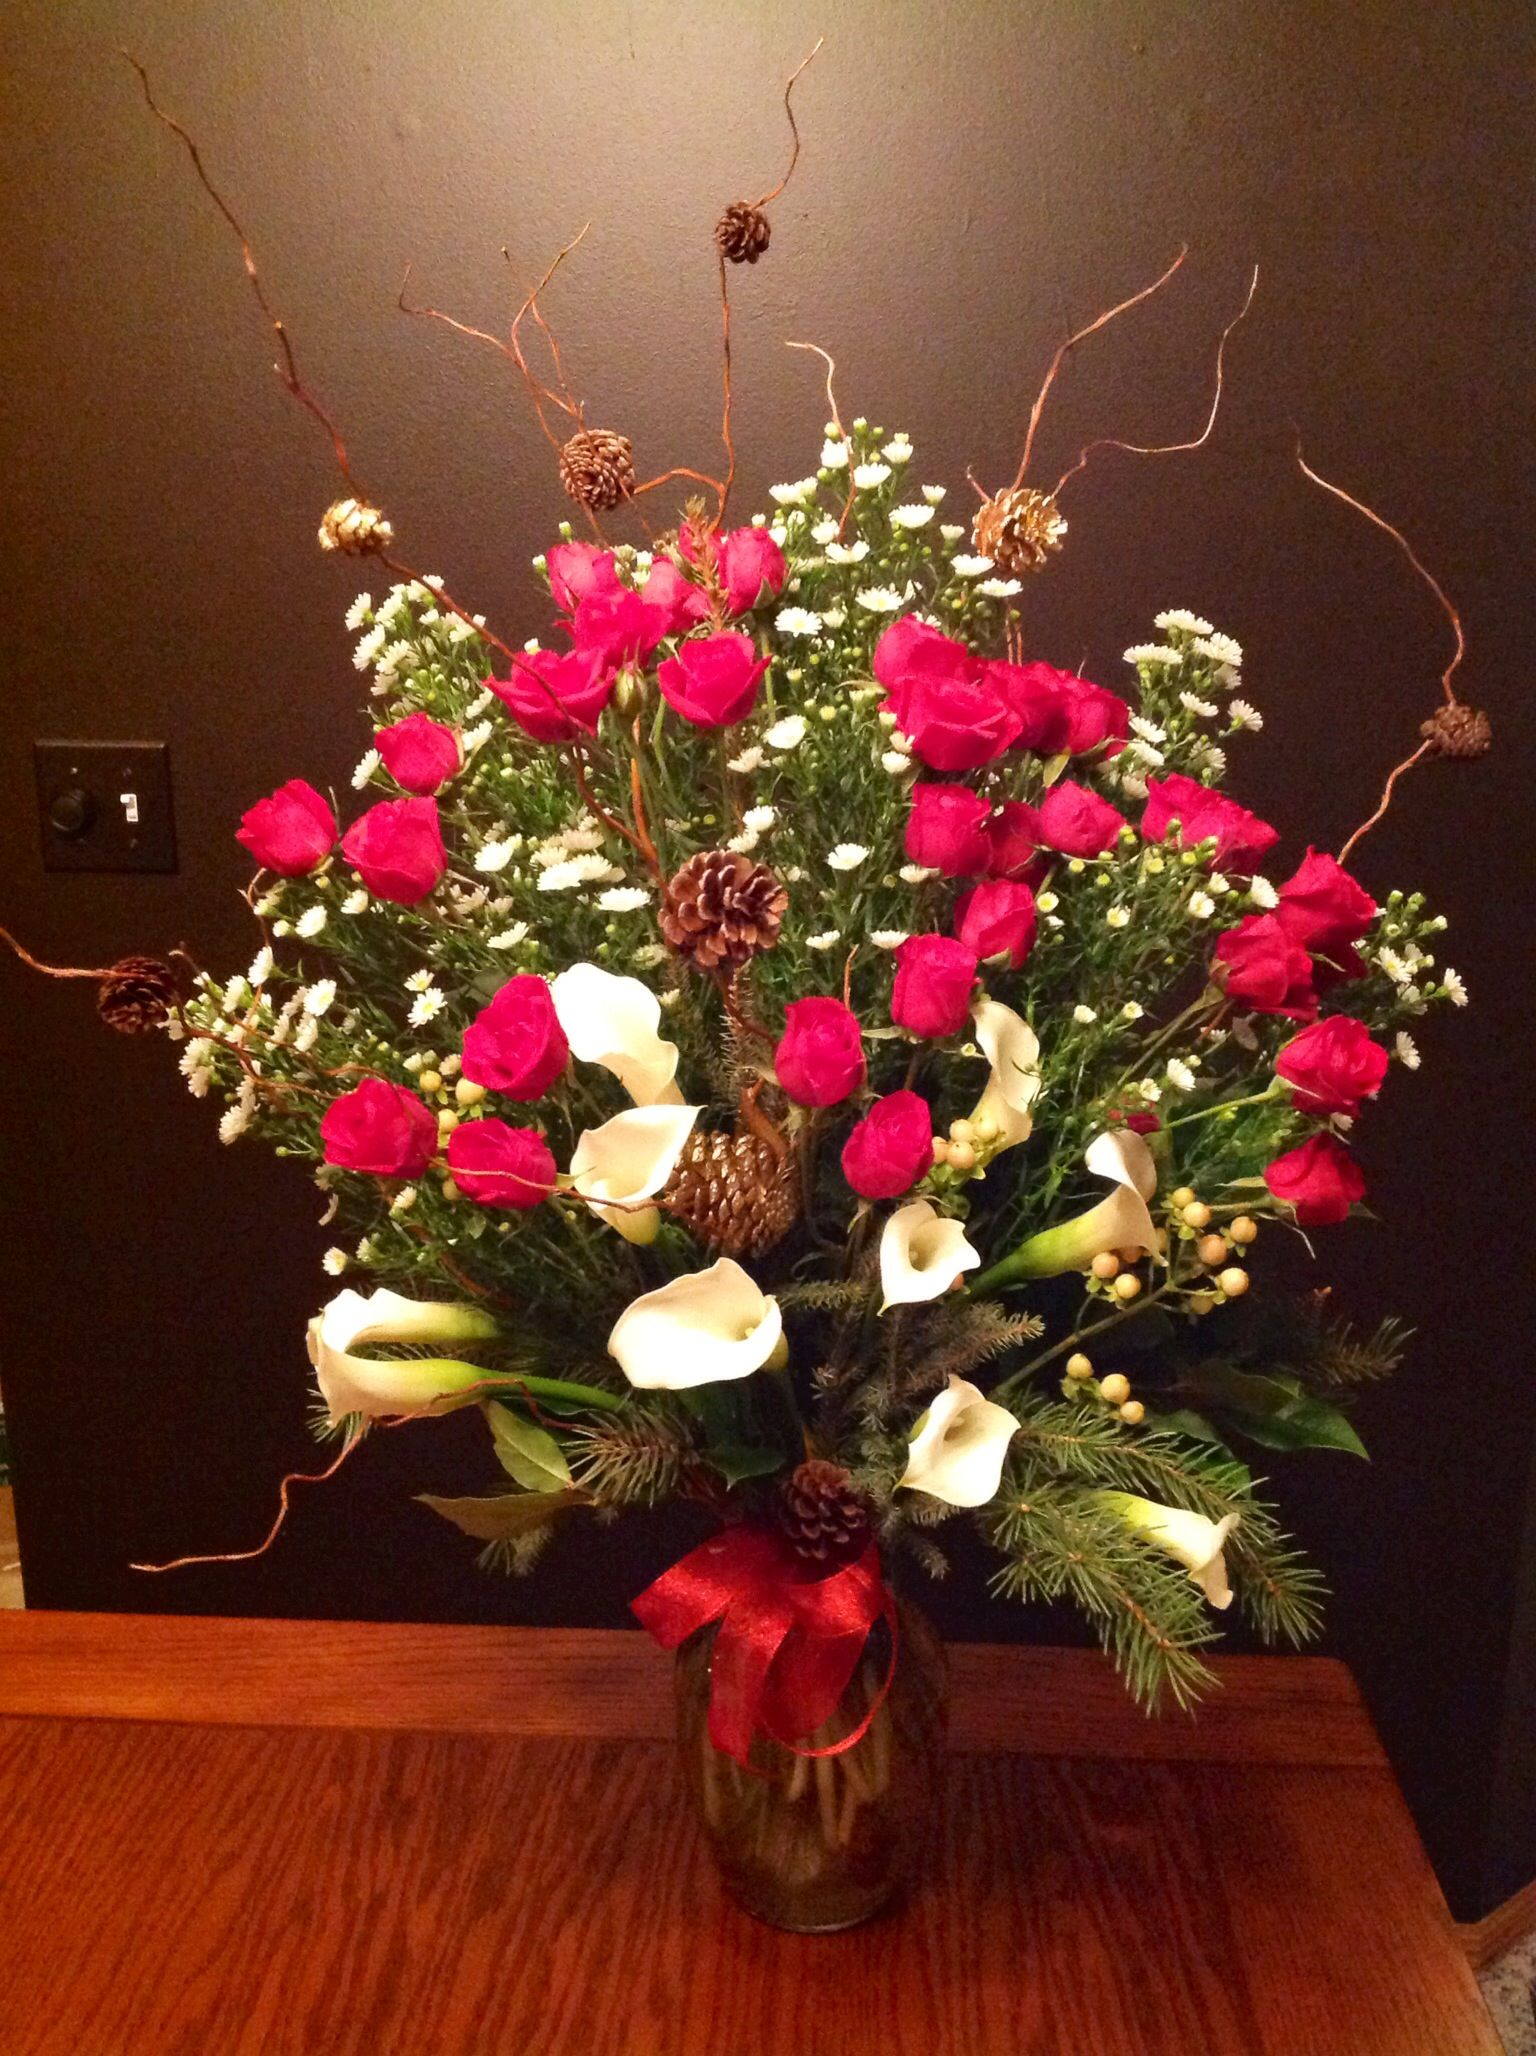 WINTER Anniversary Arrangement made with White Calla Lilies, Roses, Curly Willow & More!